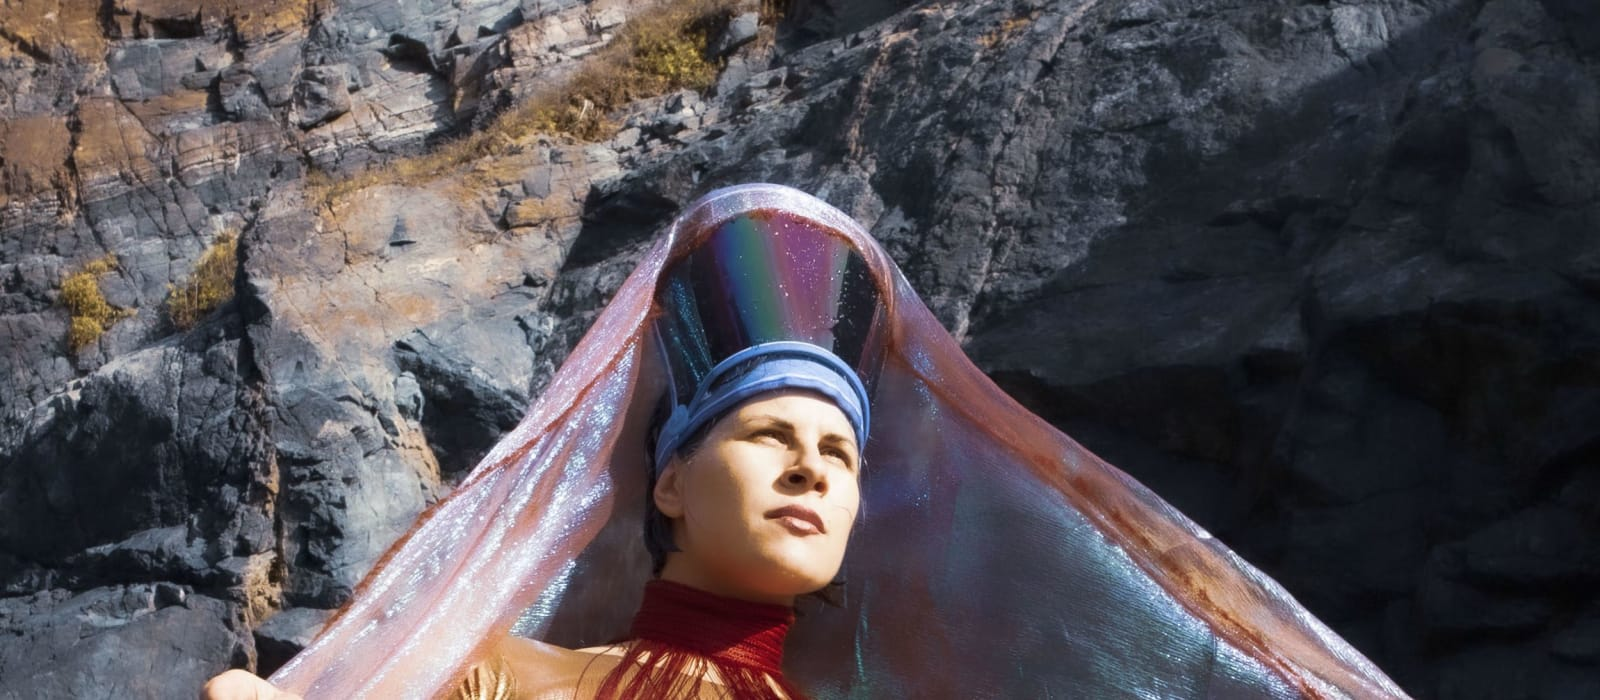 Gery Georgieva is standing in a gold unitard, open armed and looking determined, out into the distance. She is wearing a gold uniard, wrapped in red and yellow tassels and a blue futuristic head piece with a peach coloured iridescent cloak.